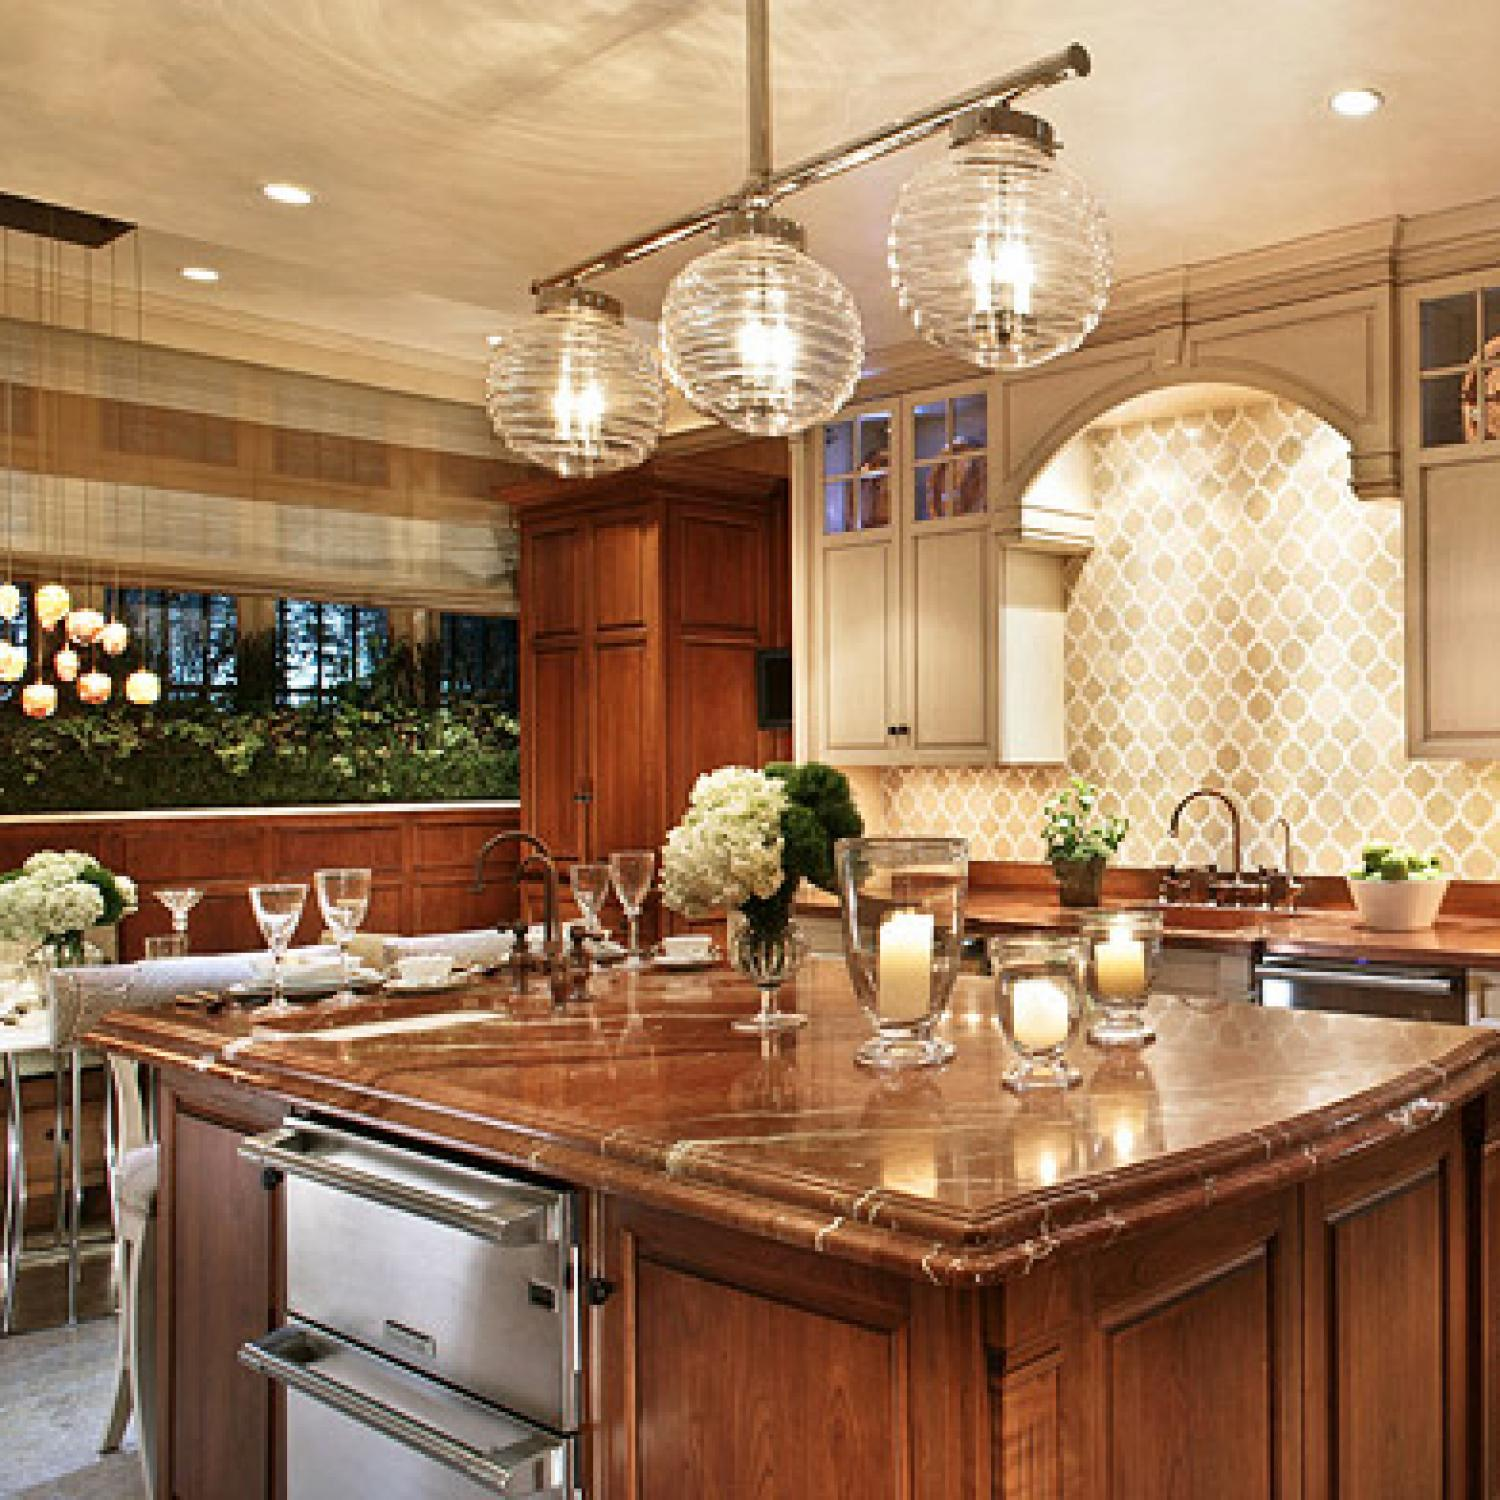 stylish islands traditional kitchens page=23 1433